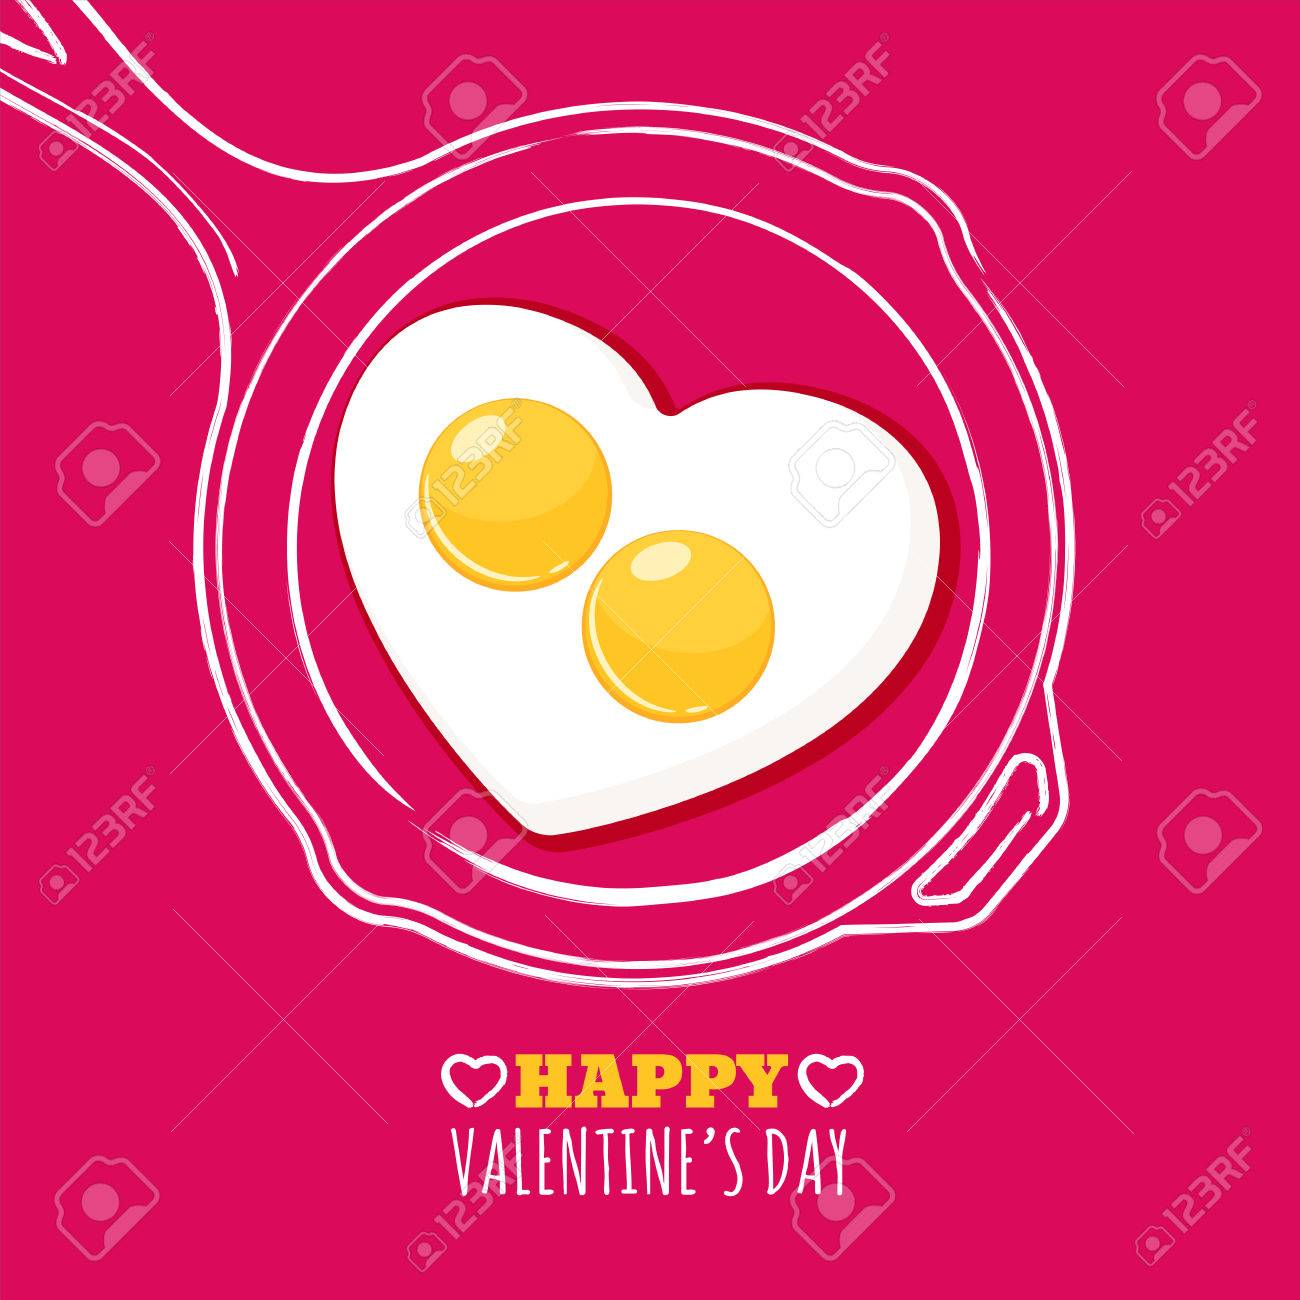 Valentines day greeting card with romantic breakfast illustration. Fried egg in heart shape and hand drawn watercolor pan. Concept for holiday menu in cafe or restaurant, banner, poster design. - 52176422